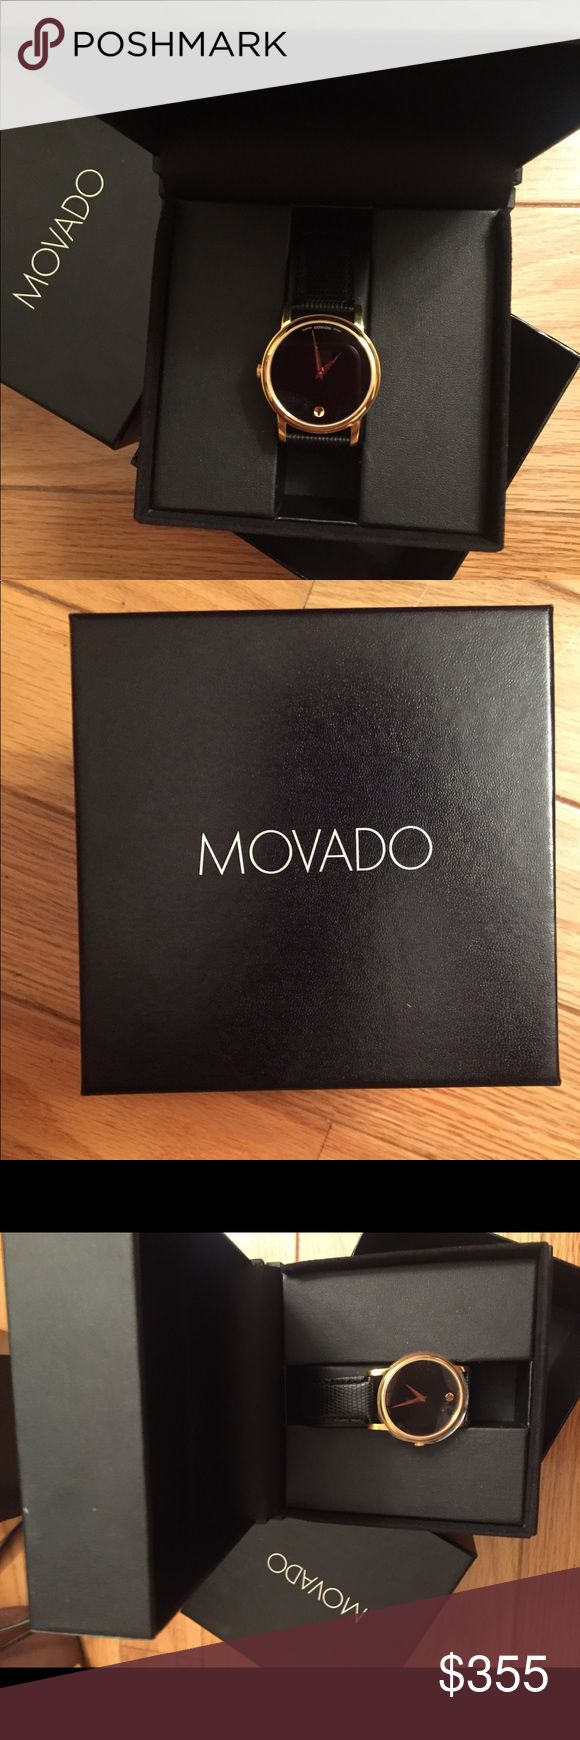 Men's Movado watch Never been worn - still in box. Brand new Movado Men's black leather strap watch. Gold face. Movado Accessories Watches